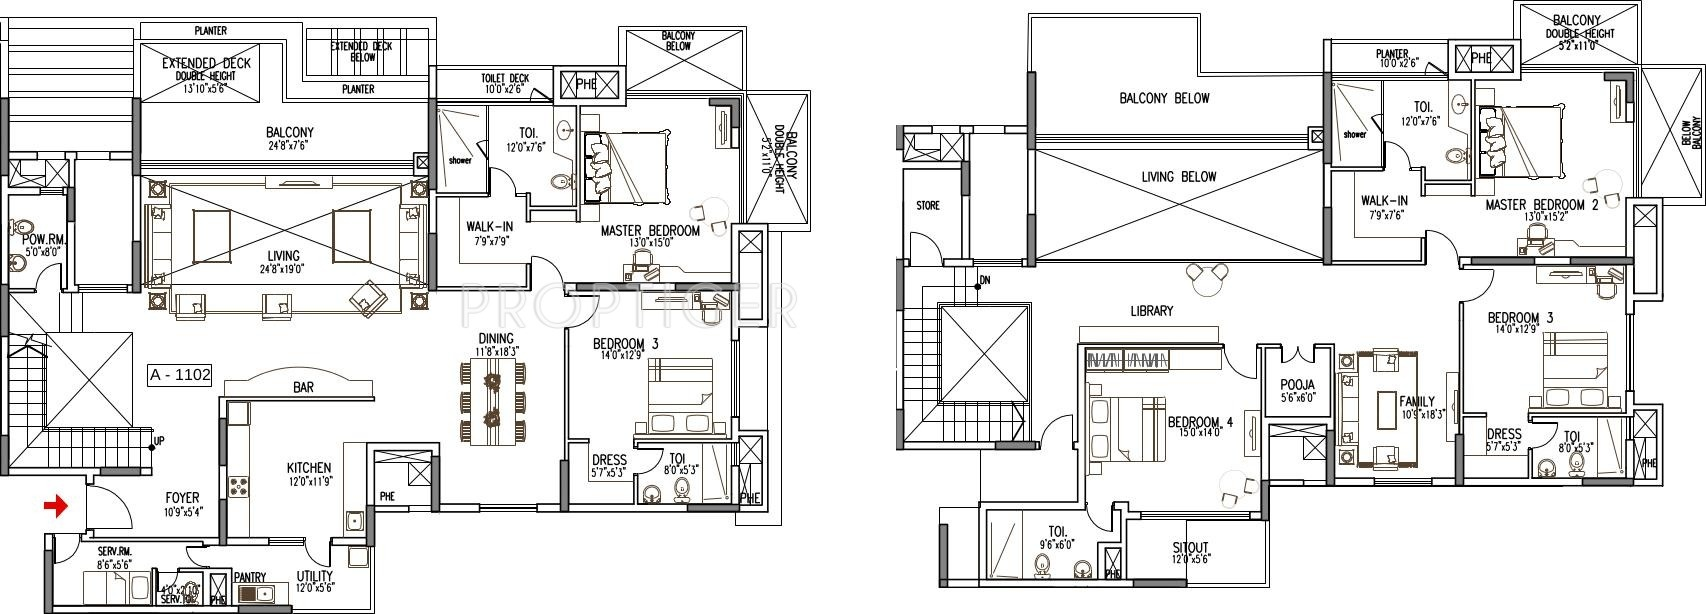 Find floor plans by address mapses ucf libraries floor for Find floor plans by address